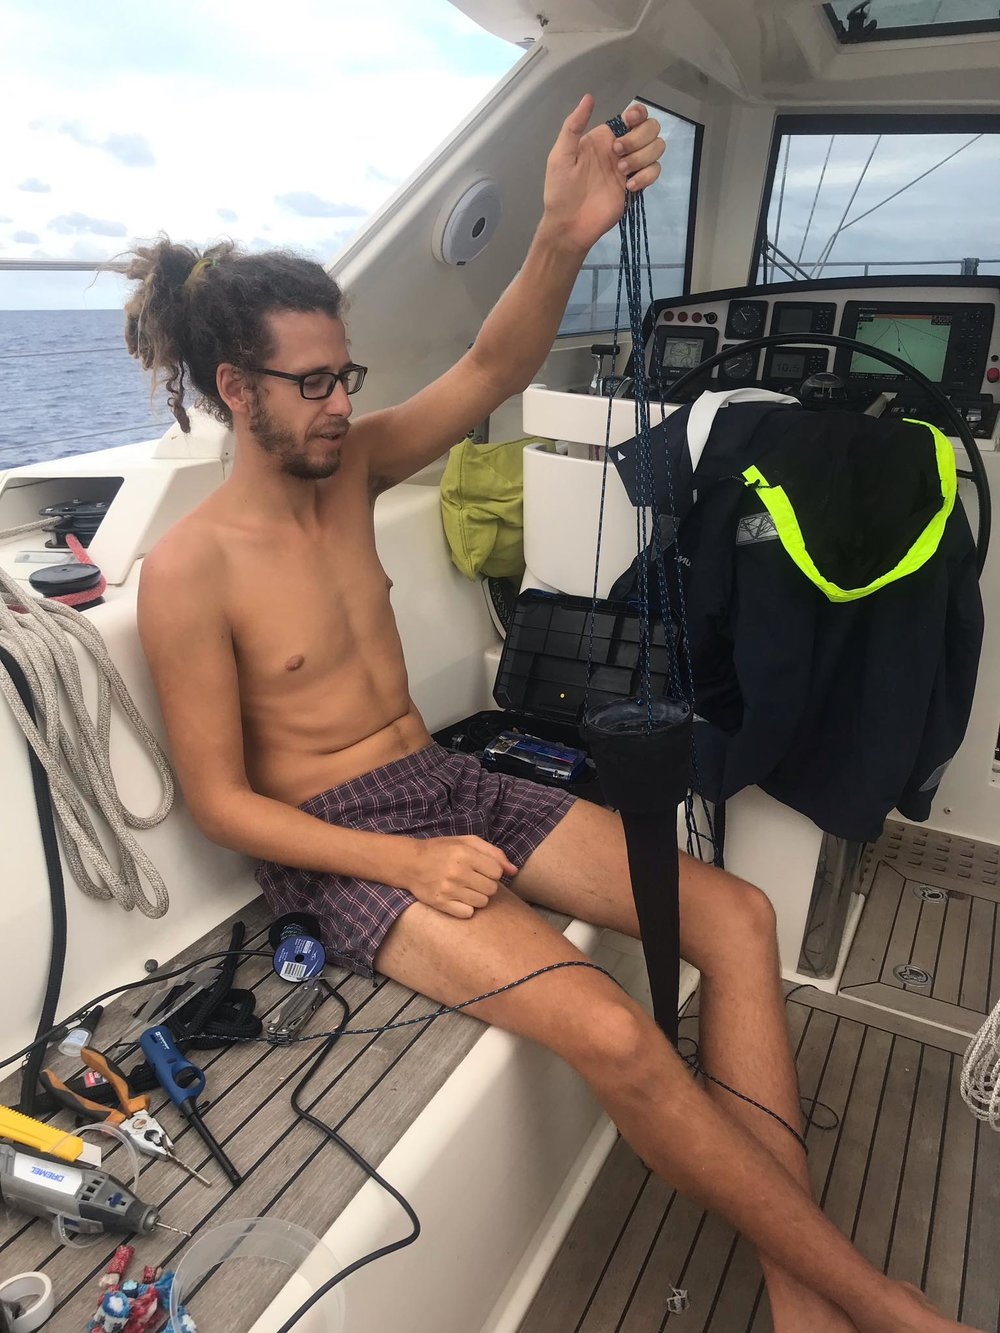 Rafa testing out some of our home-made marine debris trawling devices